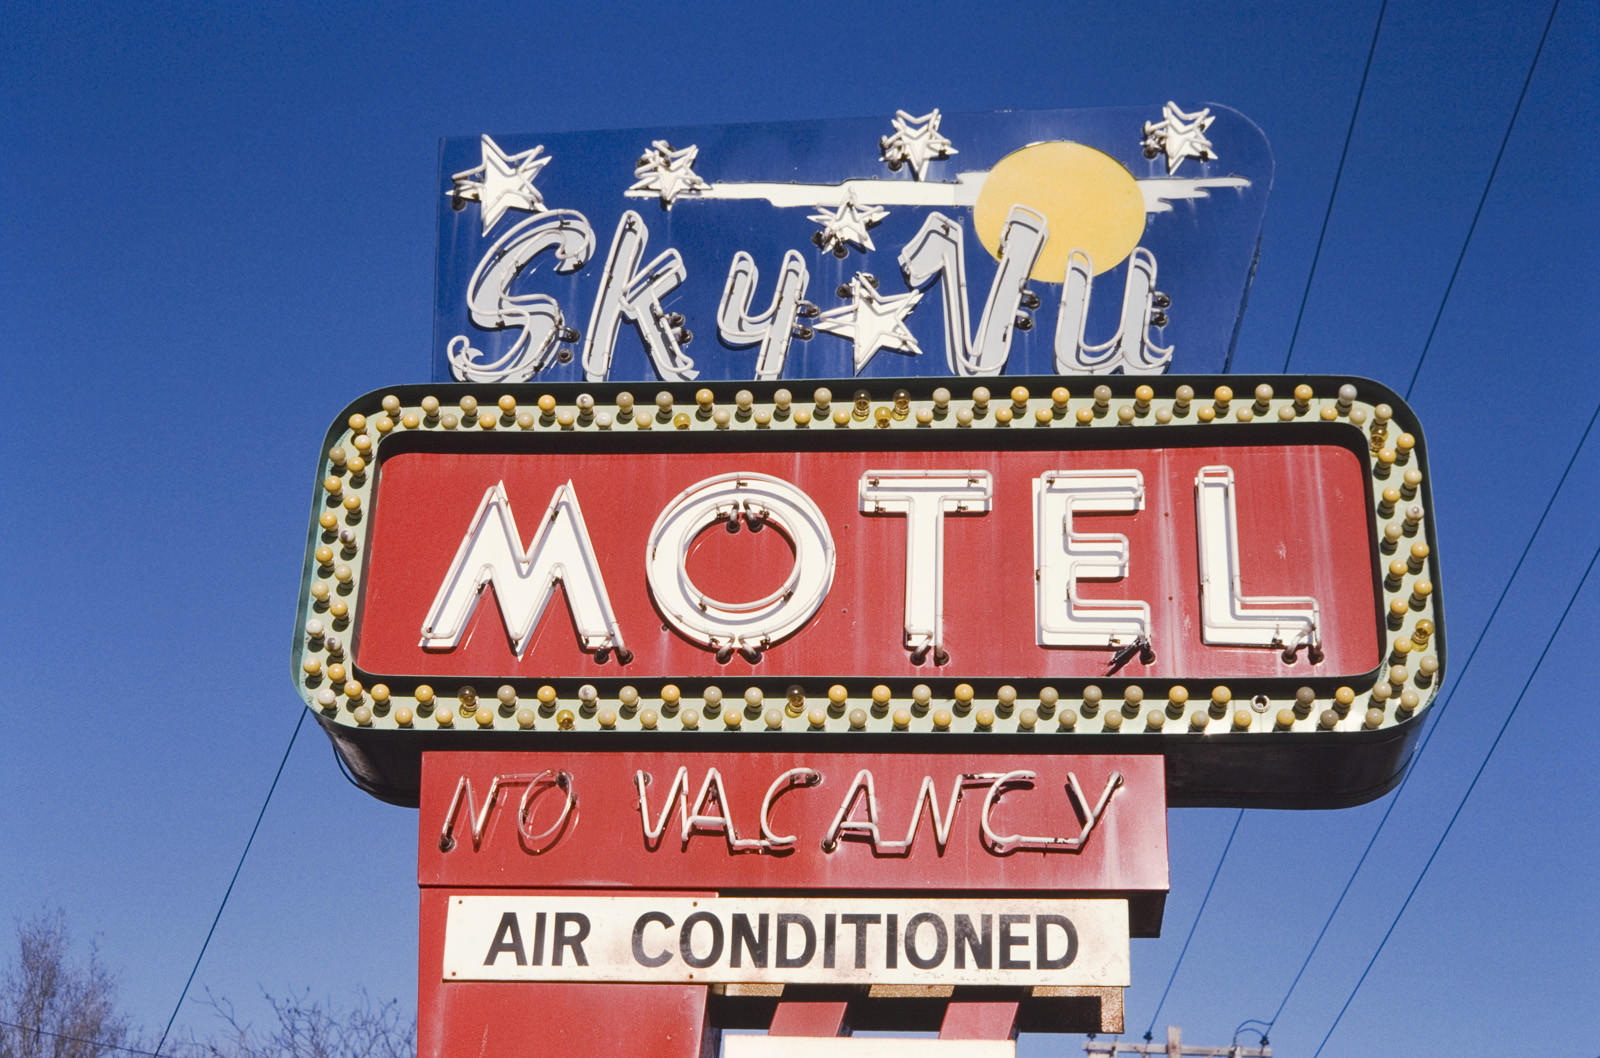 Sky Vu Motel Sign, Kansas City, Mo.